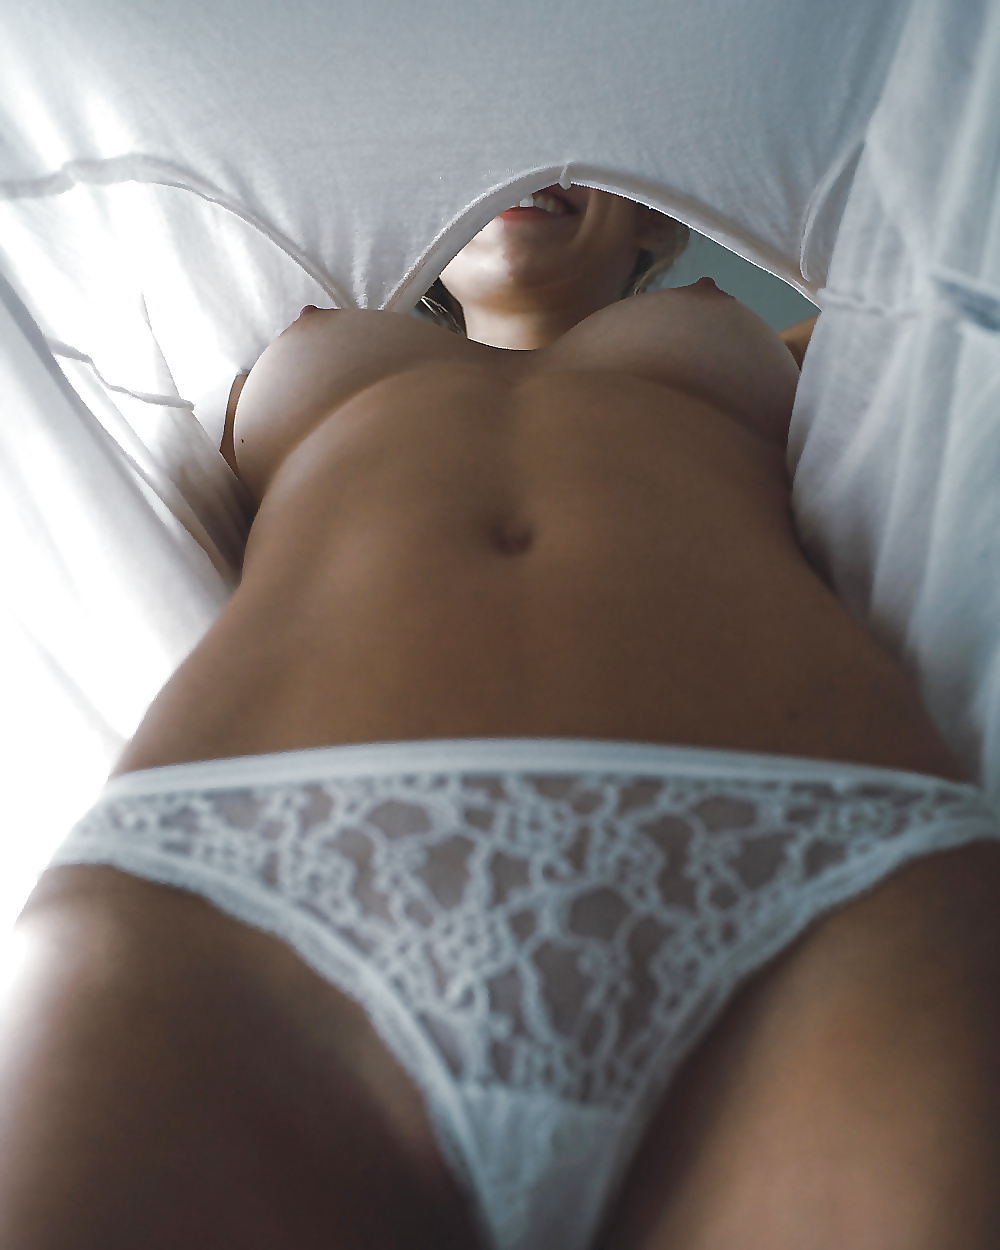 nude pictures of naughty women